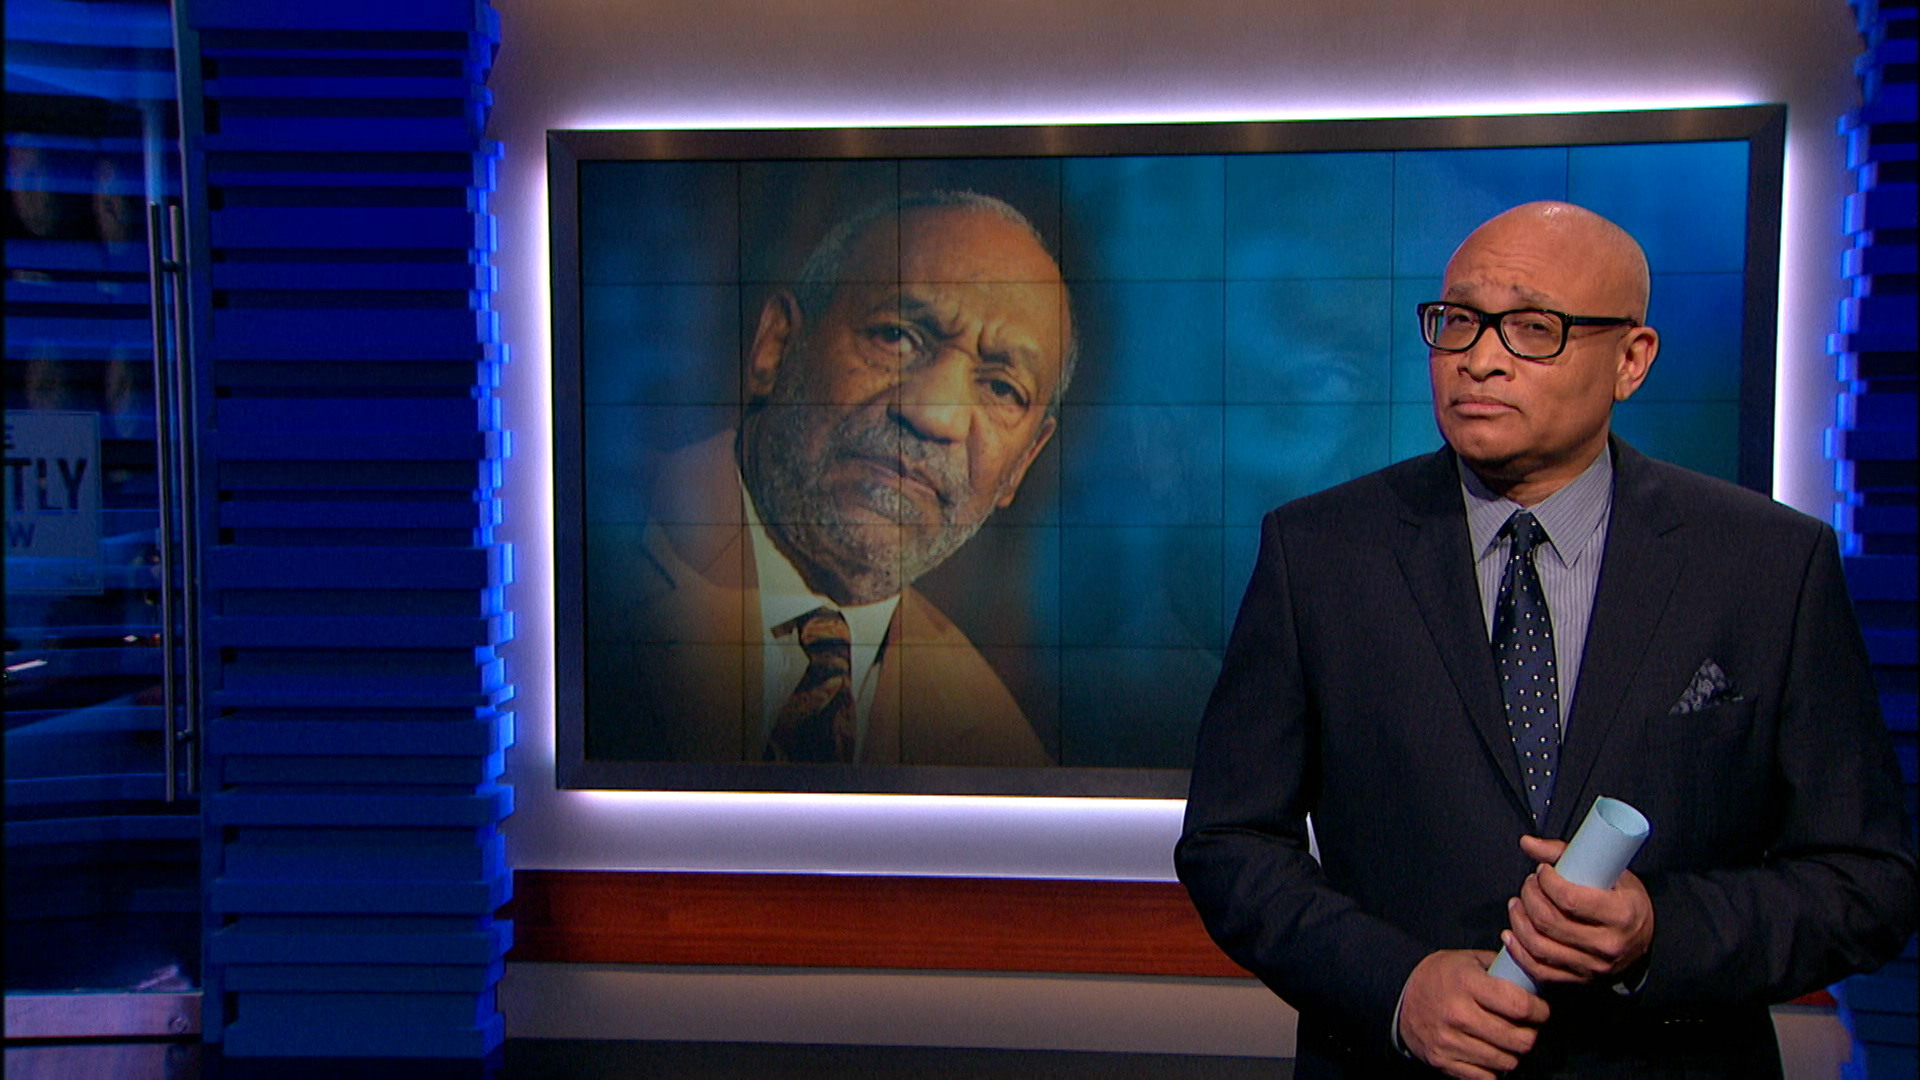 January 20, 2015 - Allegations Against Bill Cosby